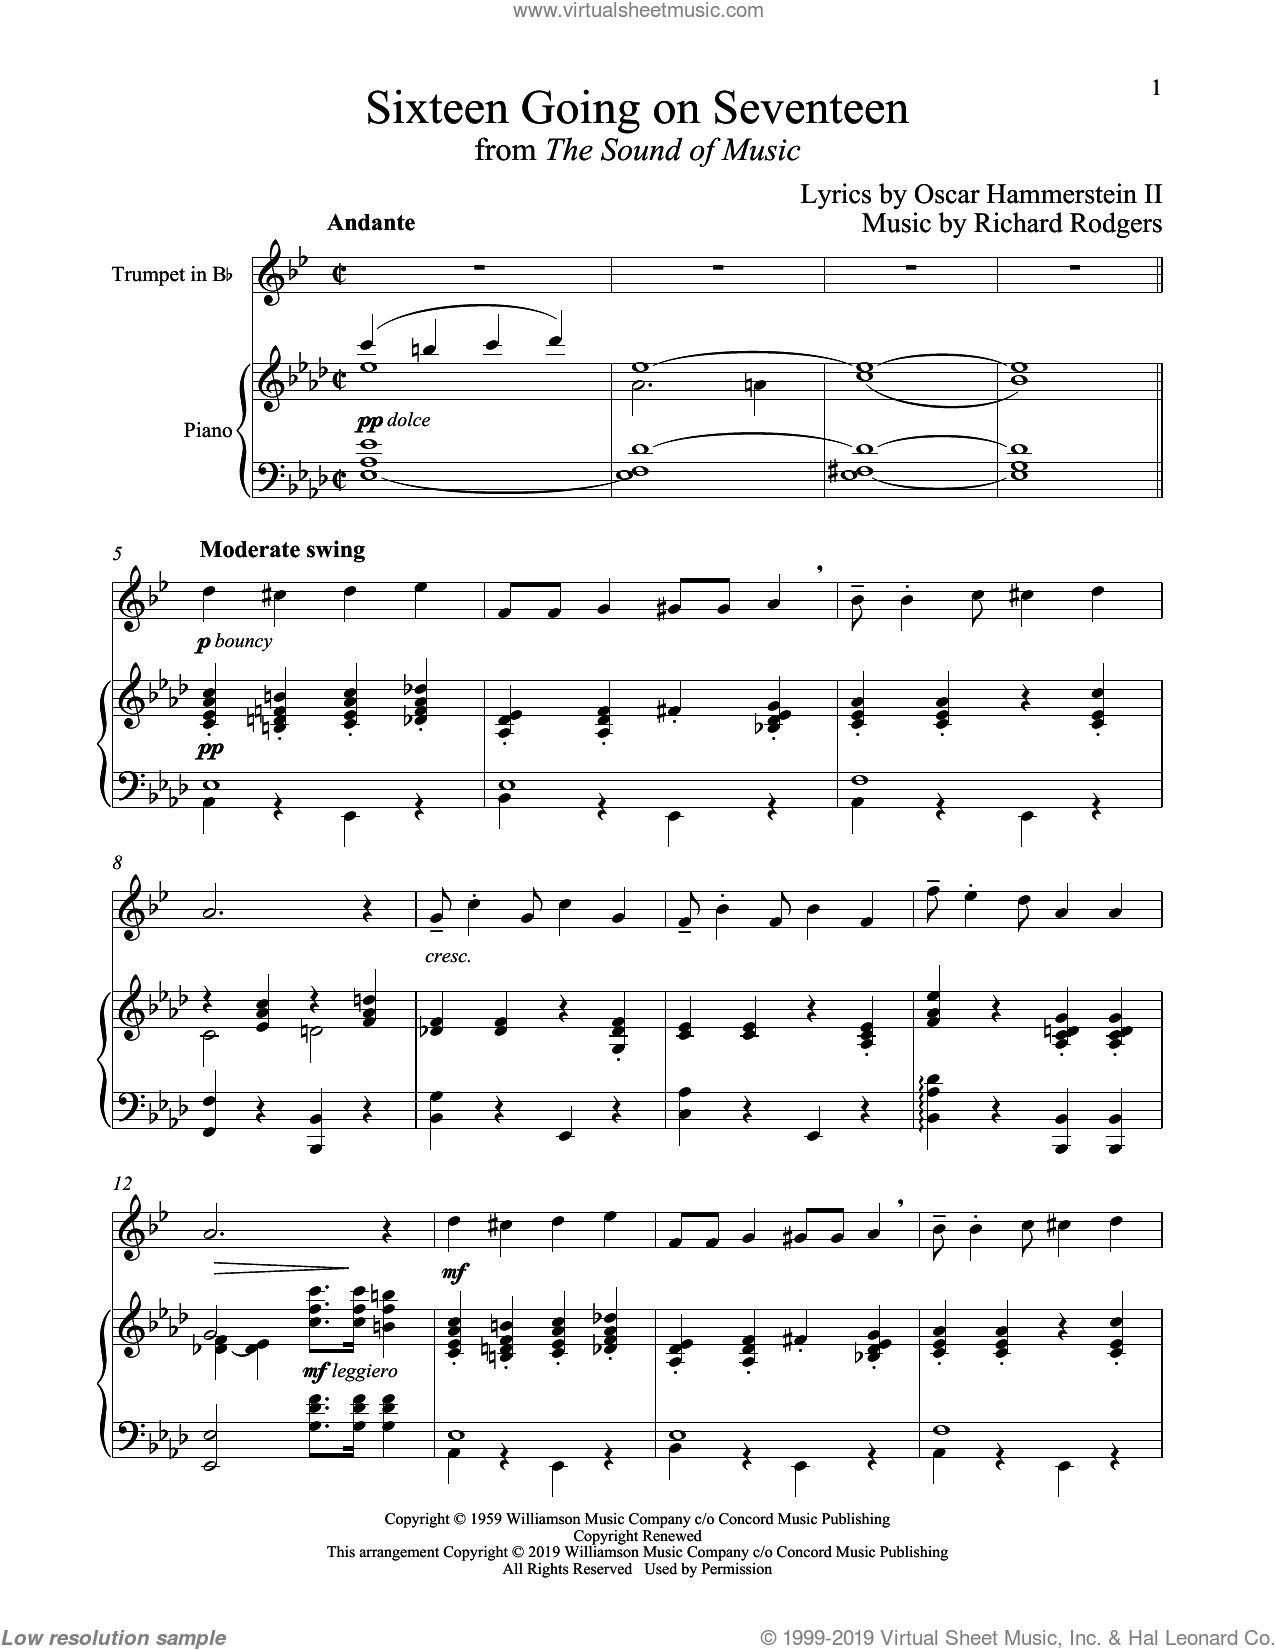 Sixteen Going On Seventeen (from The Sound of Music) sheet music for trumpet and piano by Richard Rodgers, Oscar II Hammerstein and Rodgers & Hammerstein, intermediate skill level